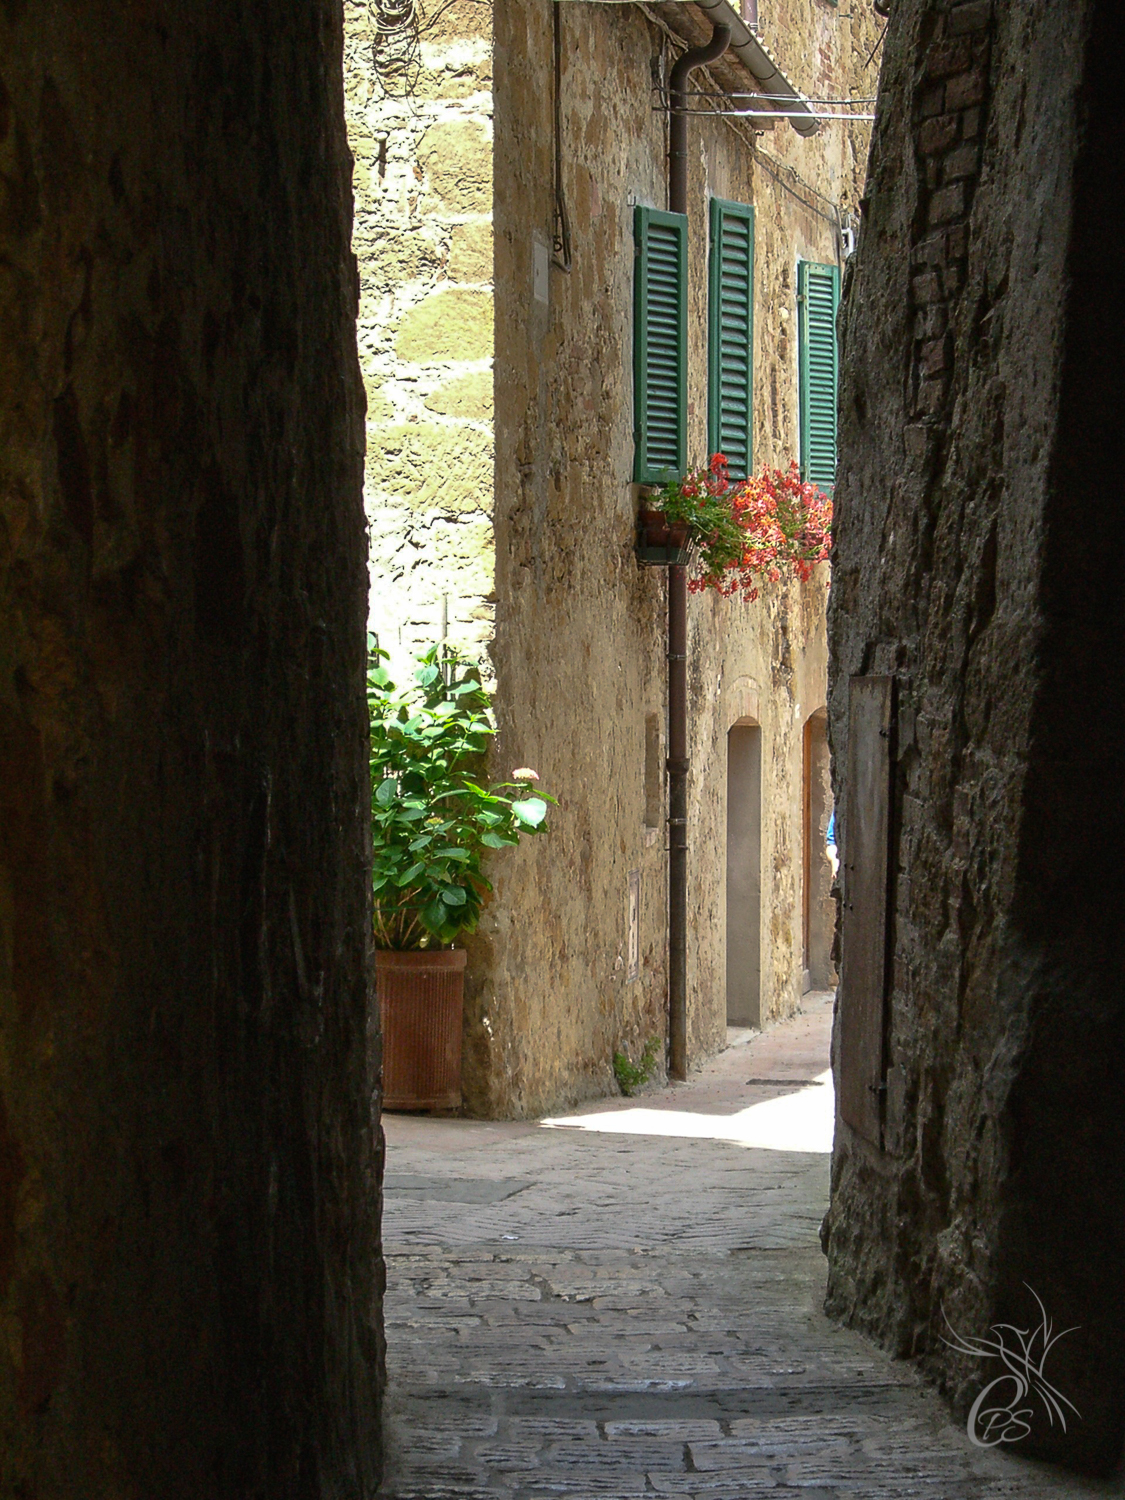 Italy: Tuscan Alleyway